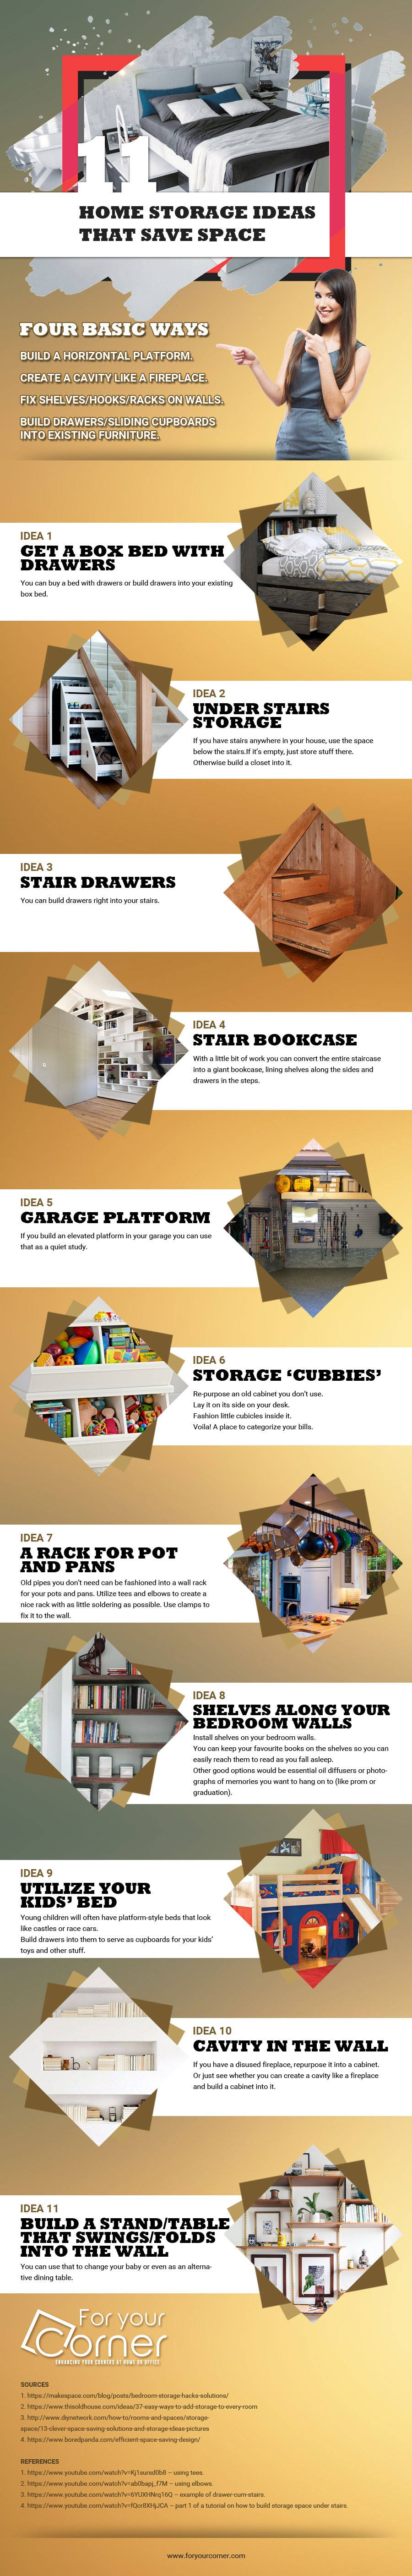 Home Storage idea that are space saving